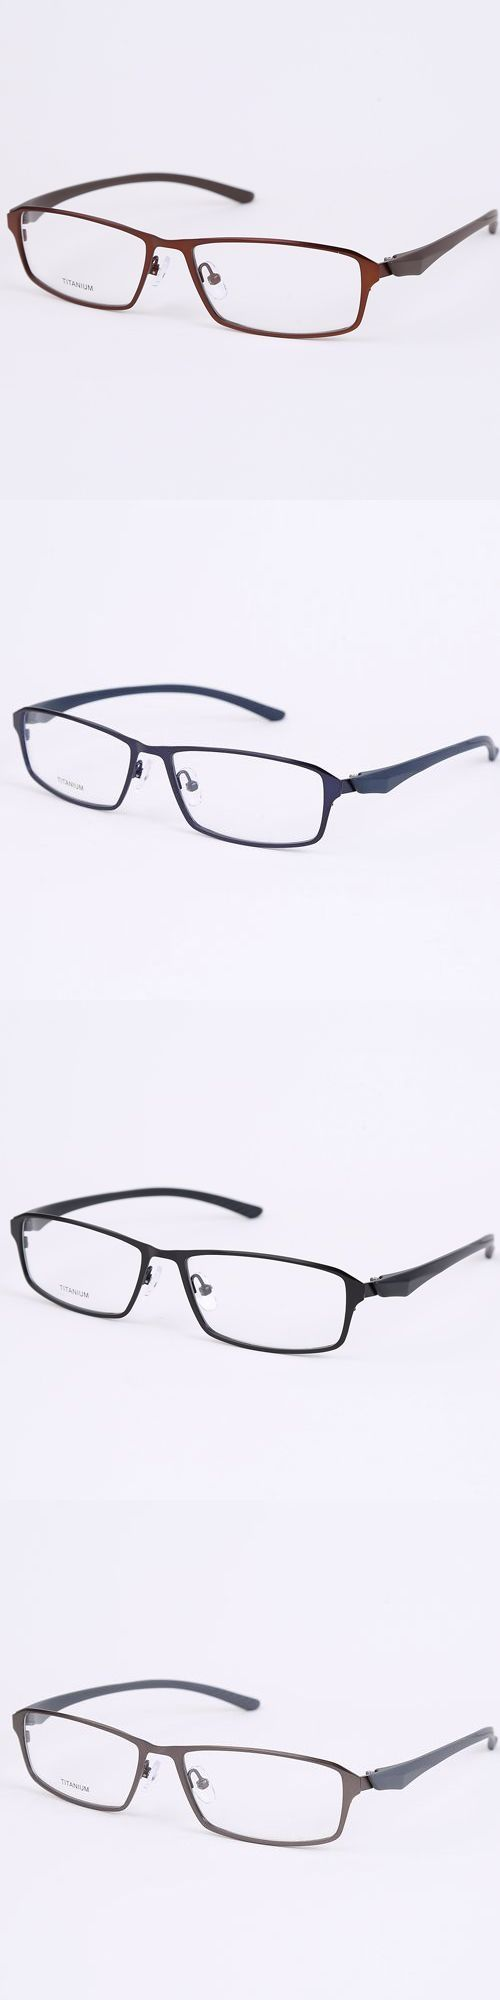 eye glasses frames for men clear glasses prescription eyewear blue glasses frames prescription glasses TR90 temple full rim 9107